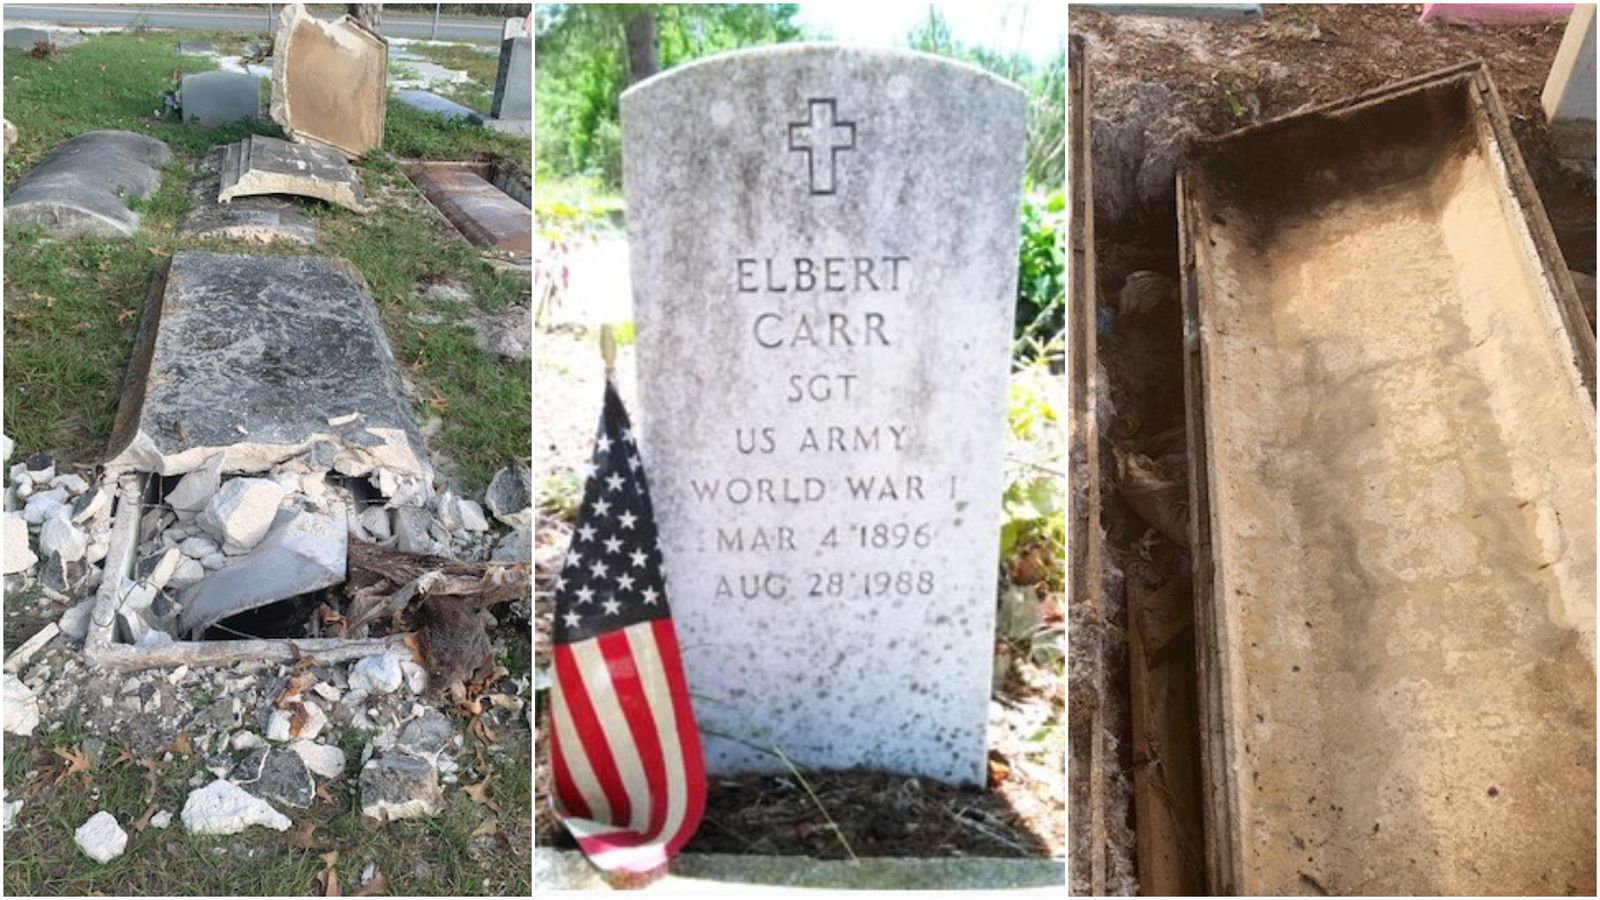 Florida Men Arrested for Robbing the Graves of Heroic Veterans